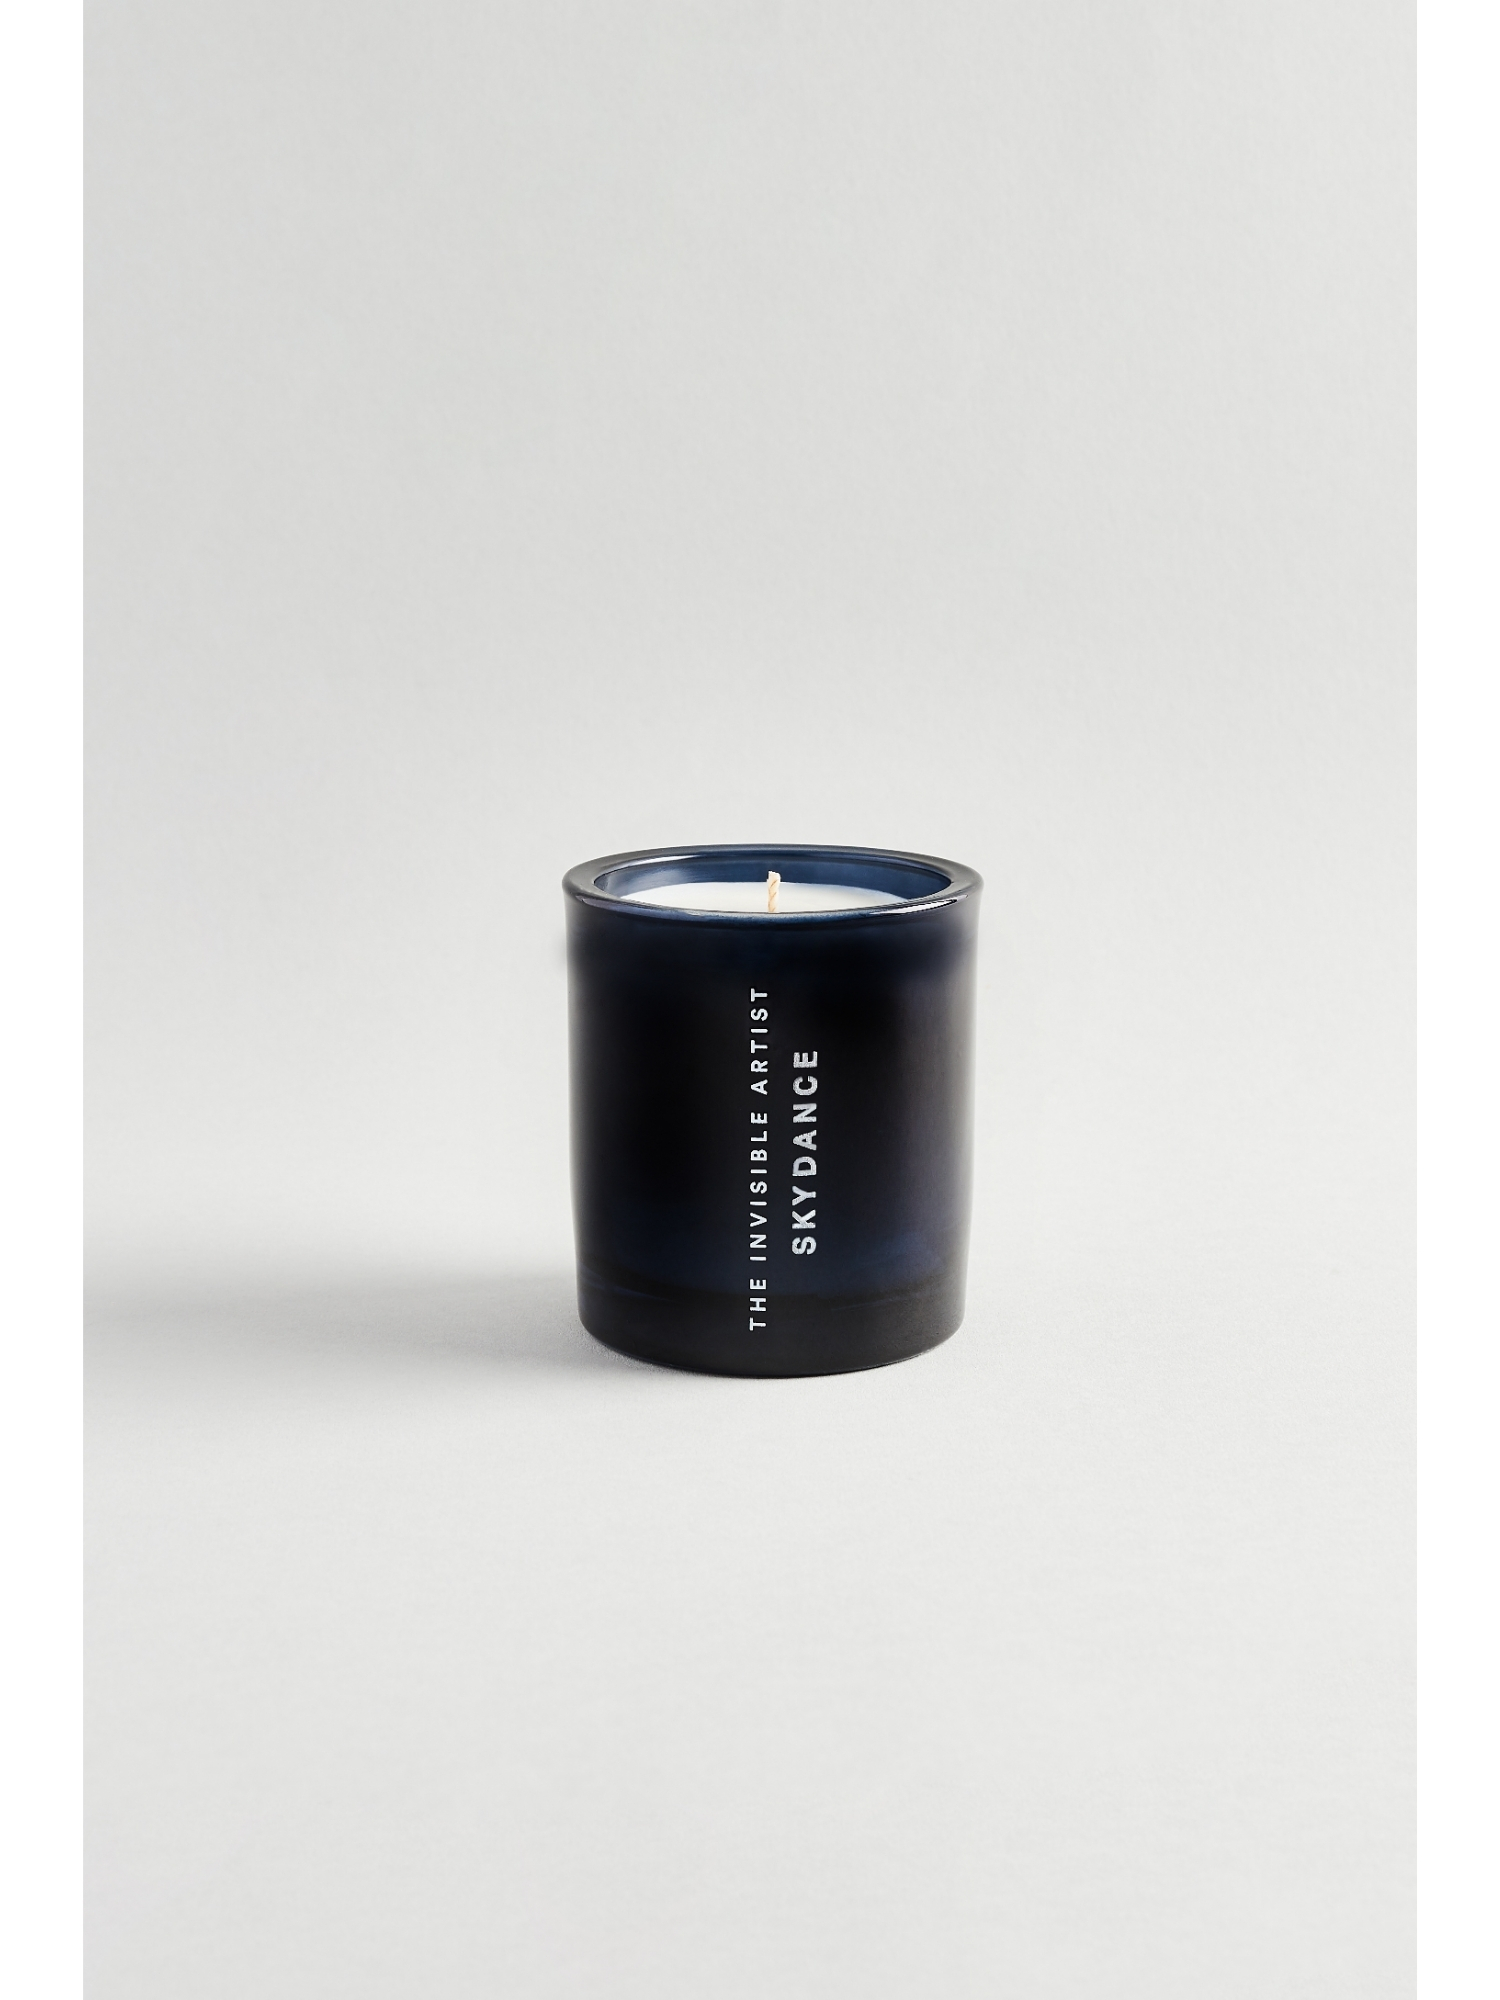 Skydance Candle by Auli London on curated-crowd.com